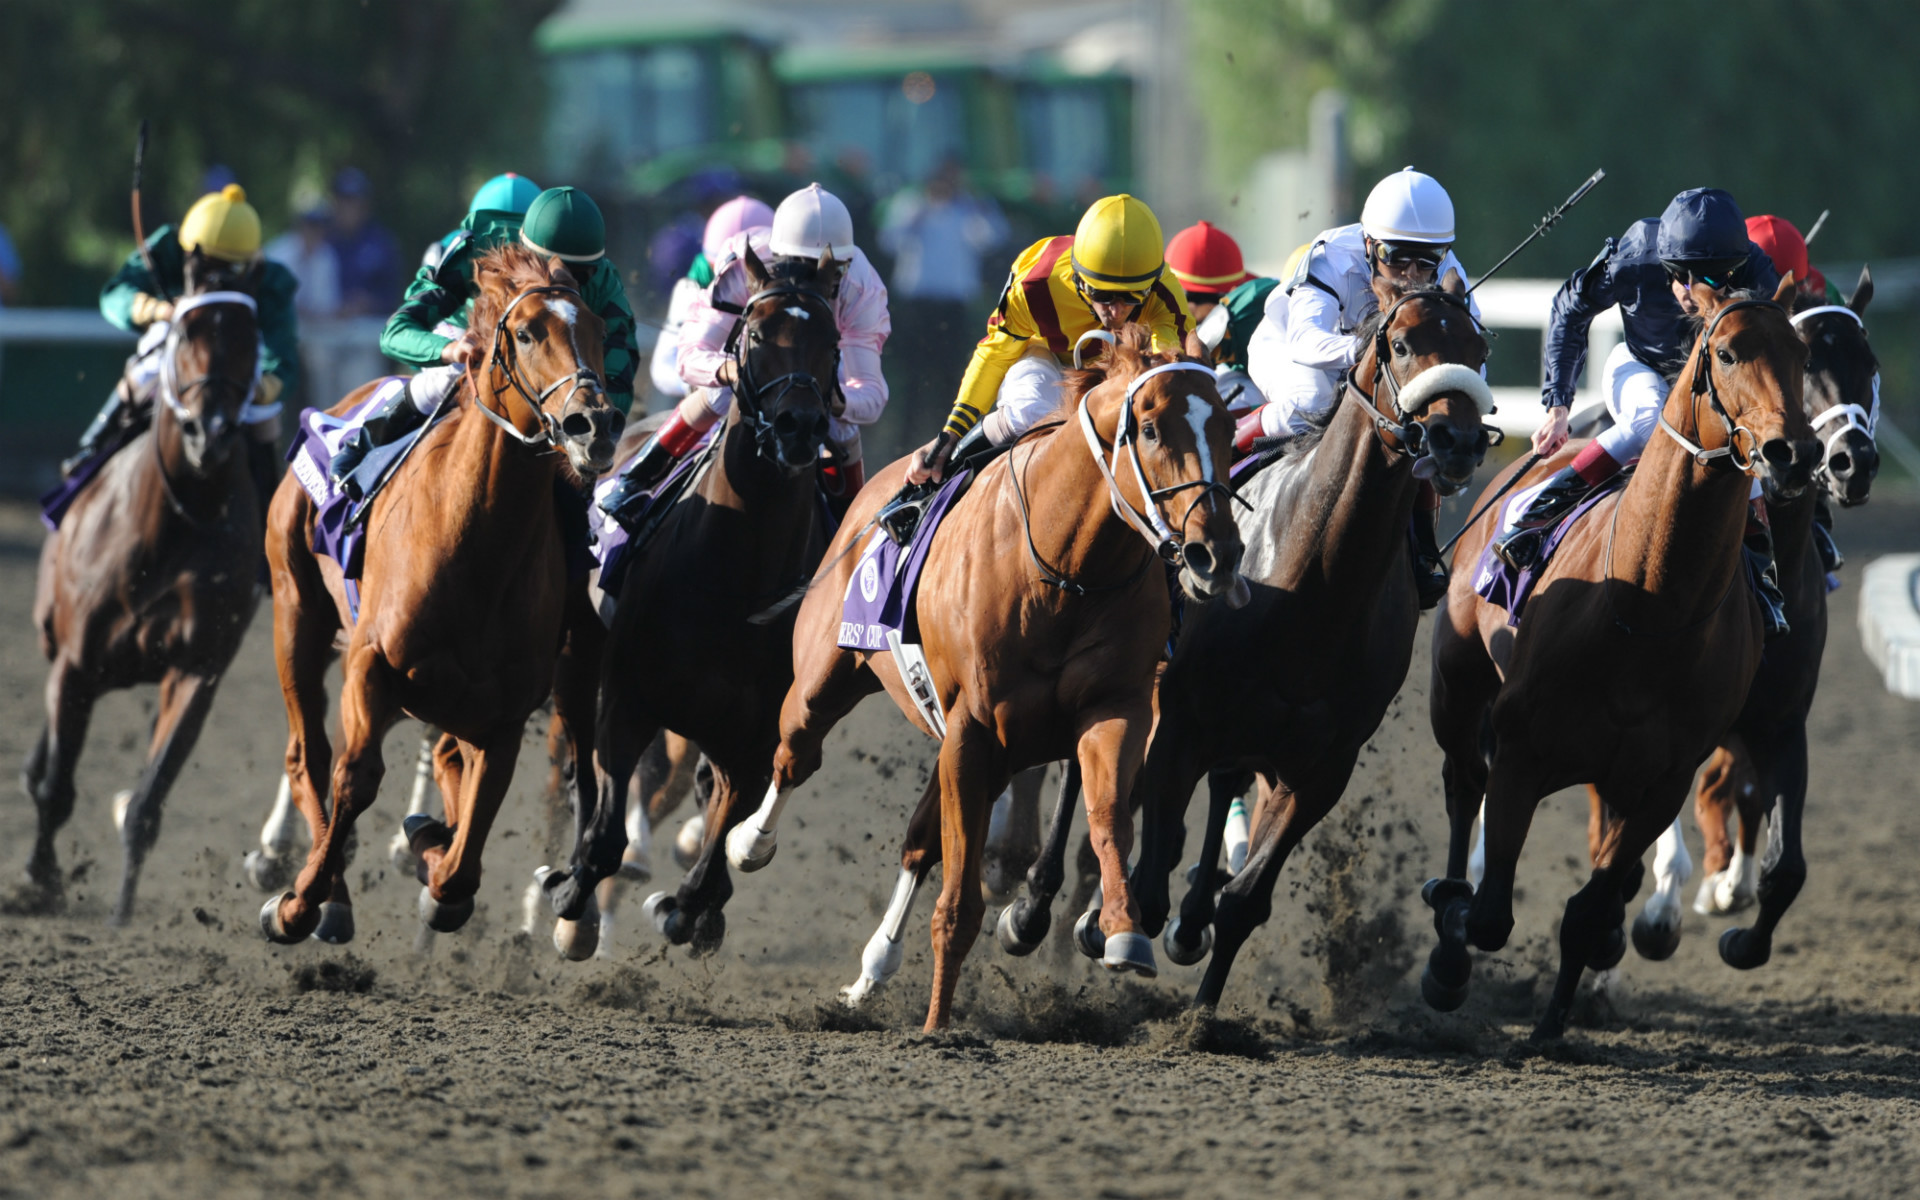 Horses Racing Towards Camera